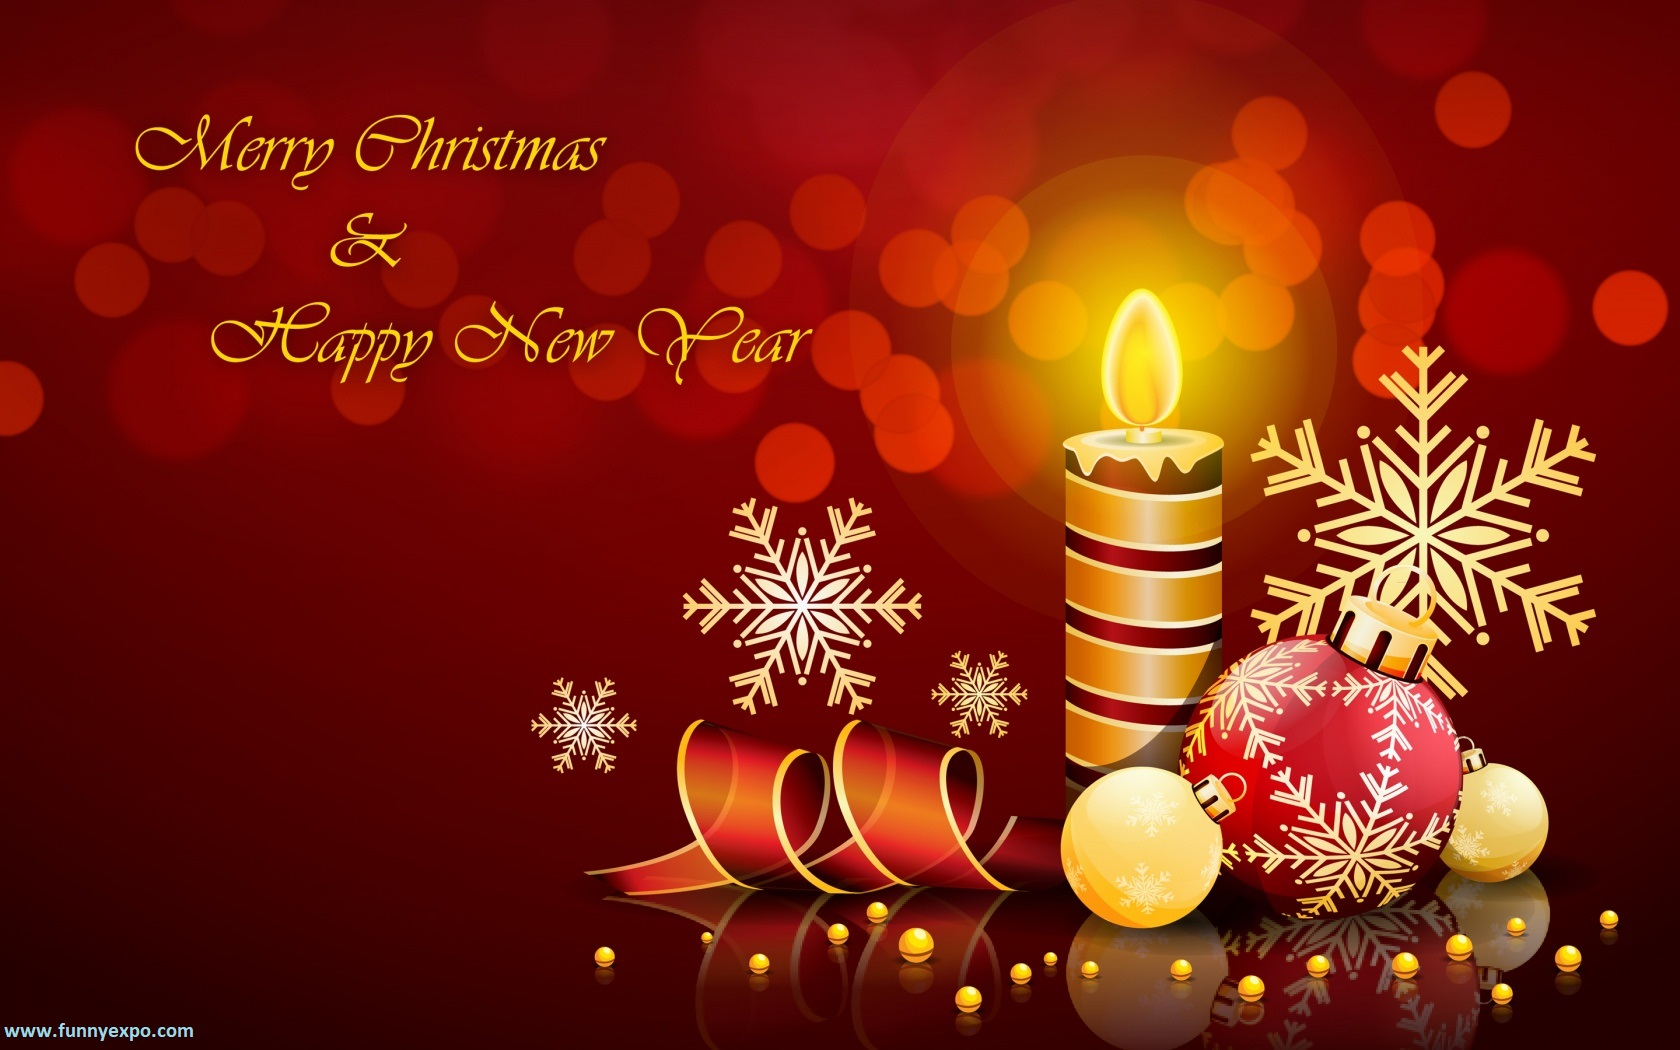 Best Merry Christmas And Happy New Year Candles Wallpaper - Funnyexpo